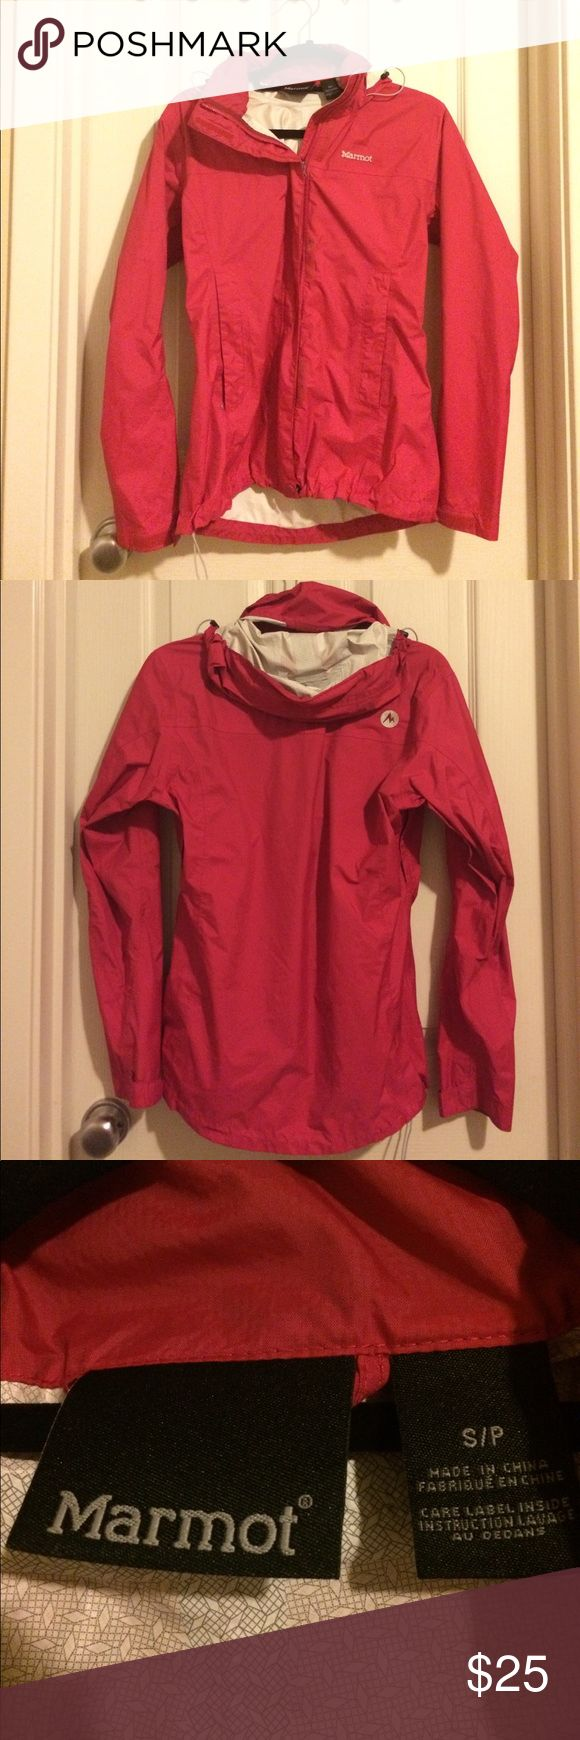 Pink Marmot women's rain jacket small This is a used women's rain jacket. It has arm pit zippers for ventilation as well as ties around the waist and hood area for tightening. Velcro shows signs of use but other in good condition. Marmot Jackets & Coats